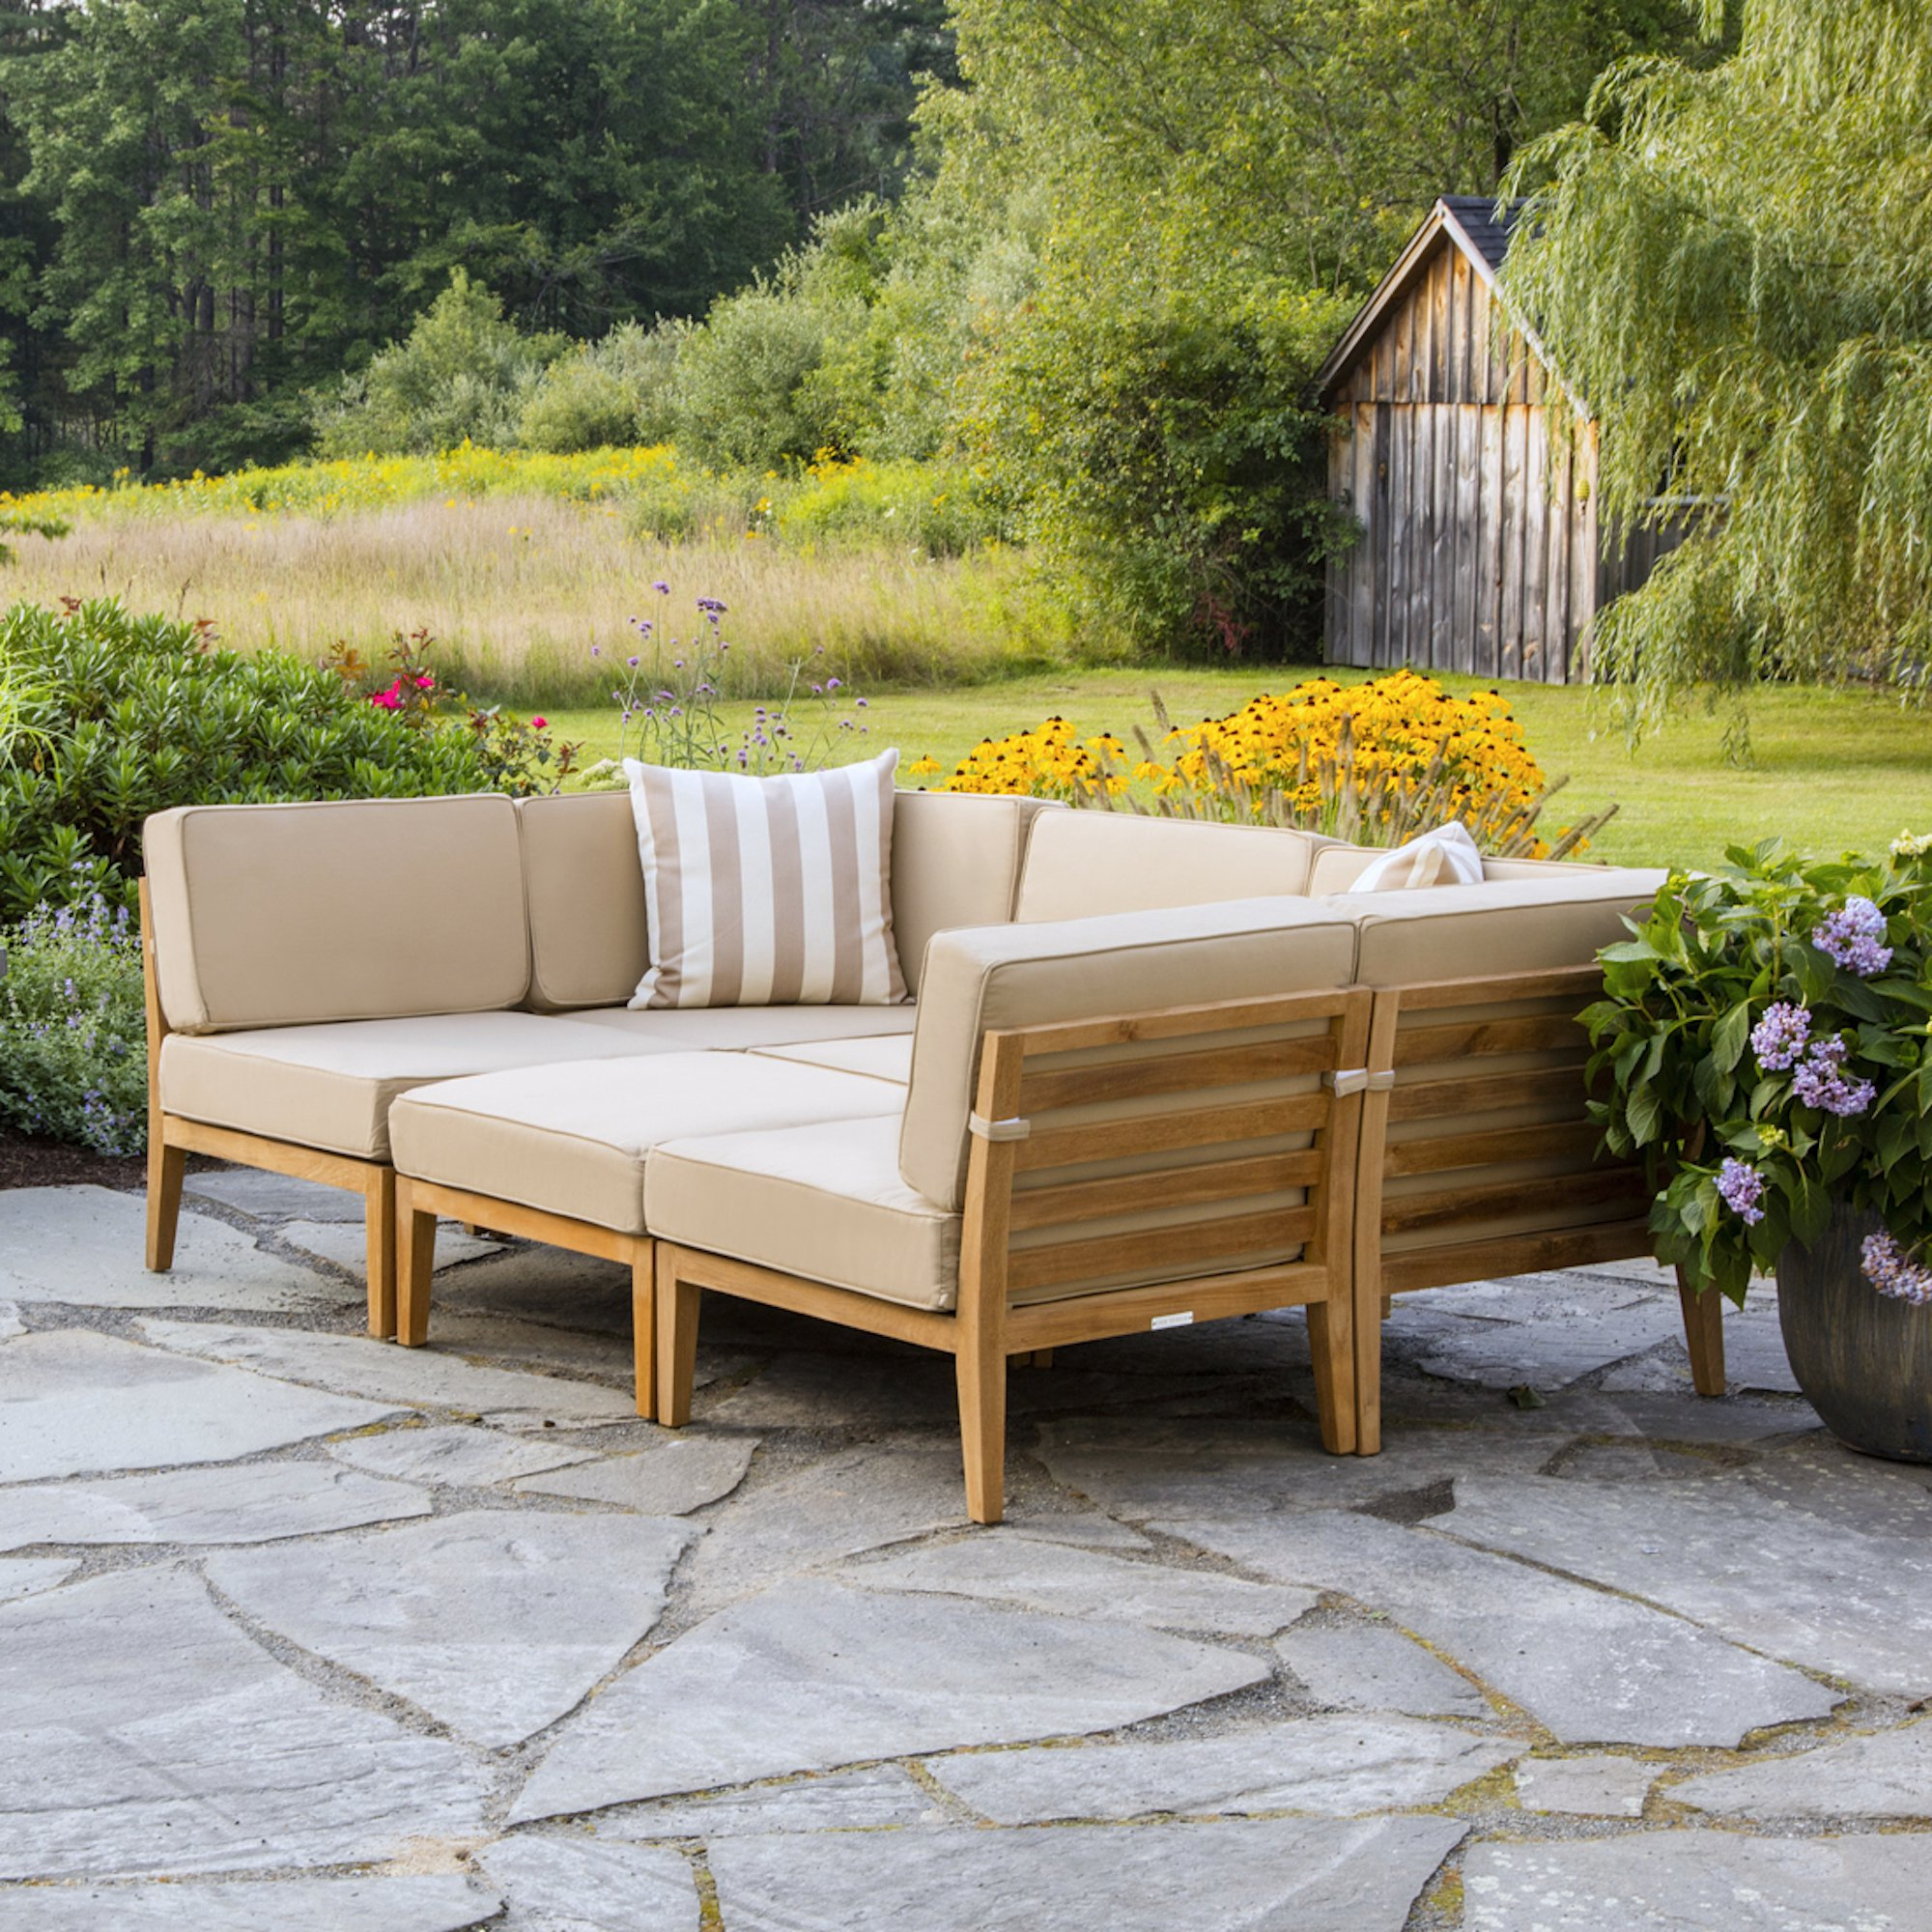 Greta Living Patio Sectionals With Cushions Throughout Widely Used Madbury Road Bali Teak Patio Sectional With Cushions (View 6 of 20)